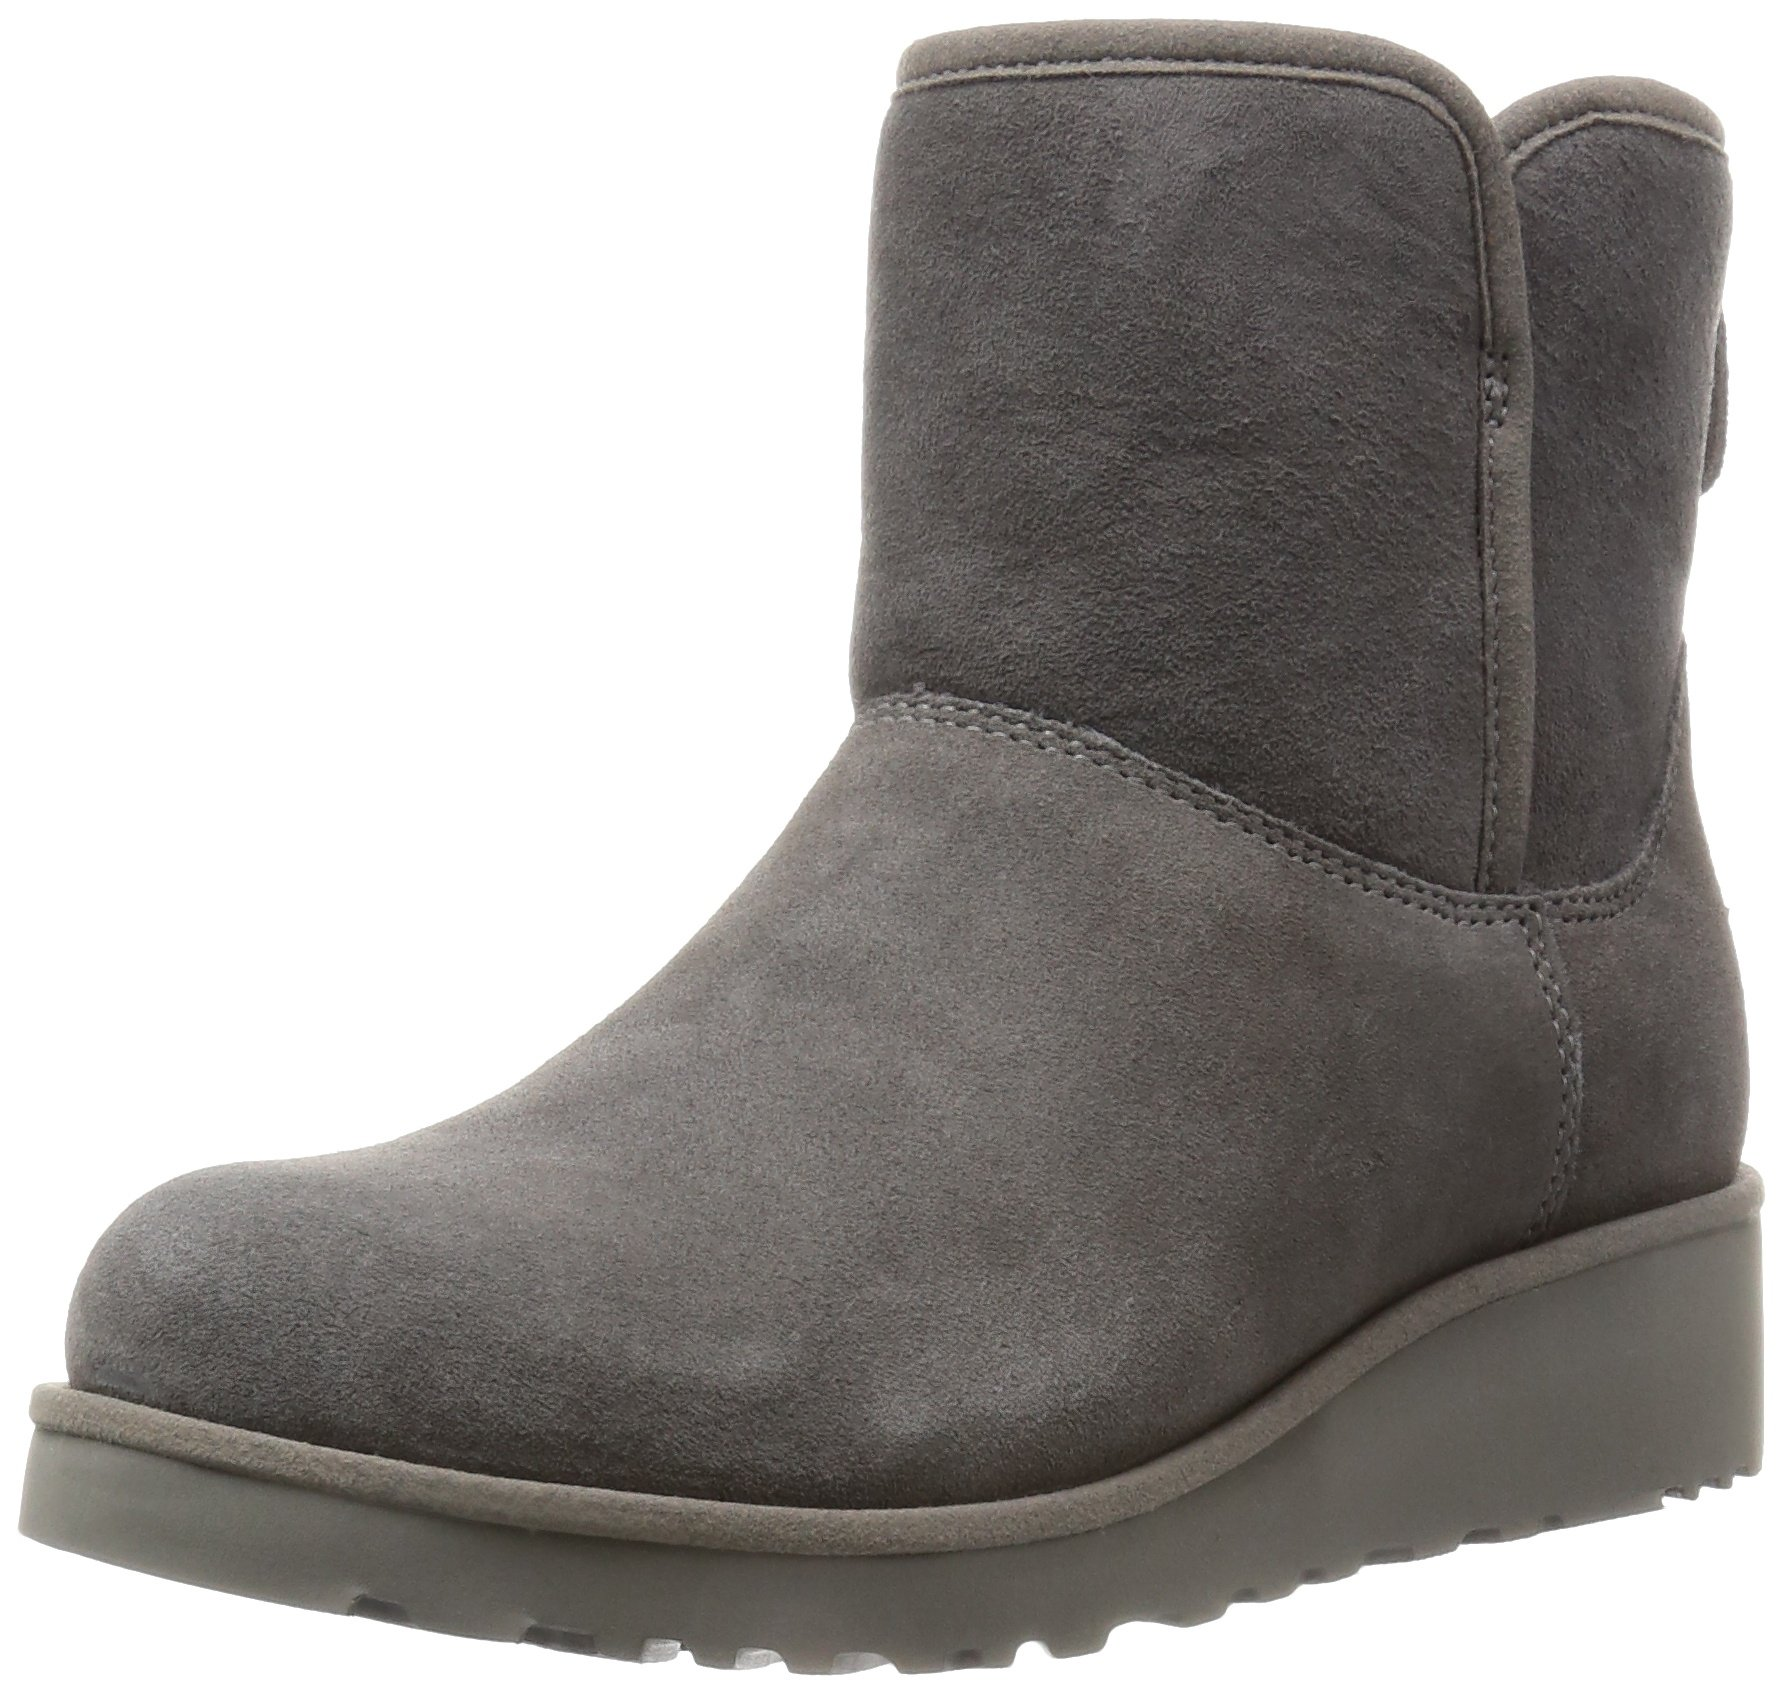 UGG Women's Kristin Winter Boot, Grey, 10 B US